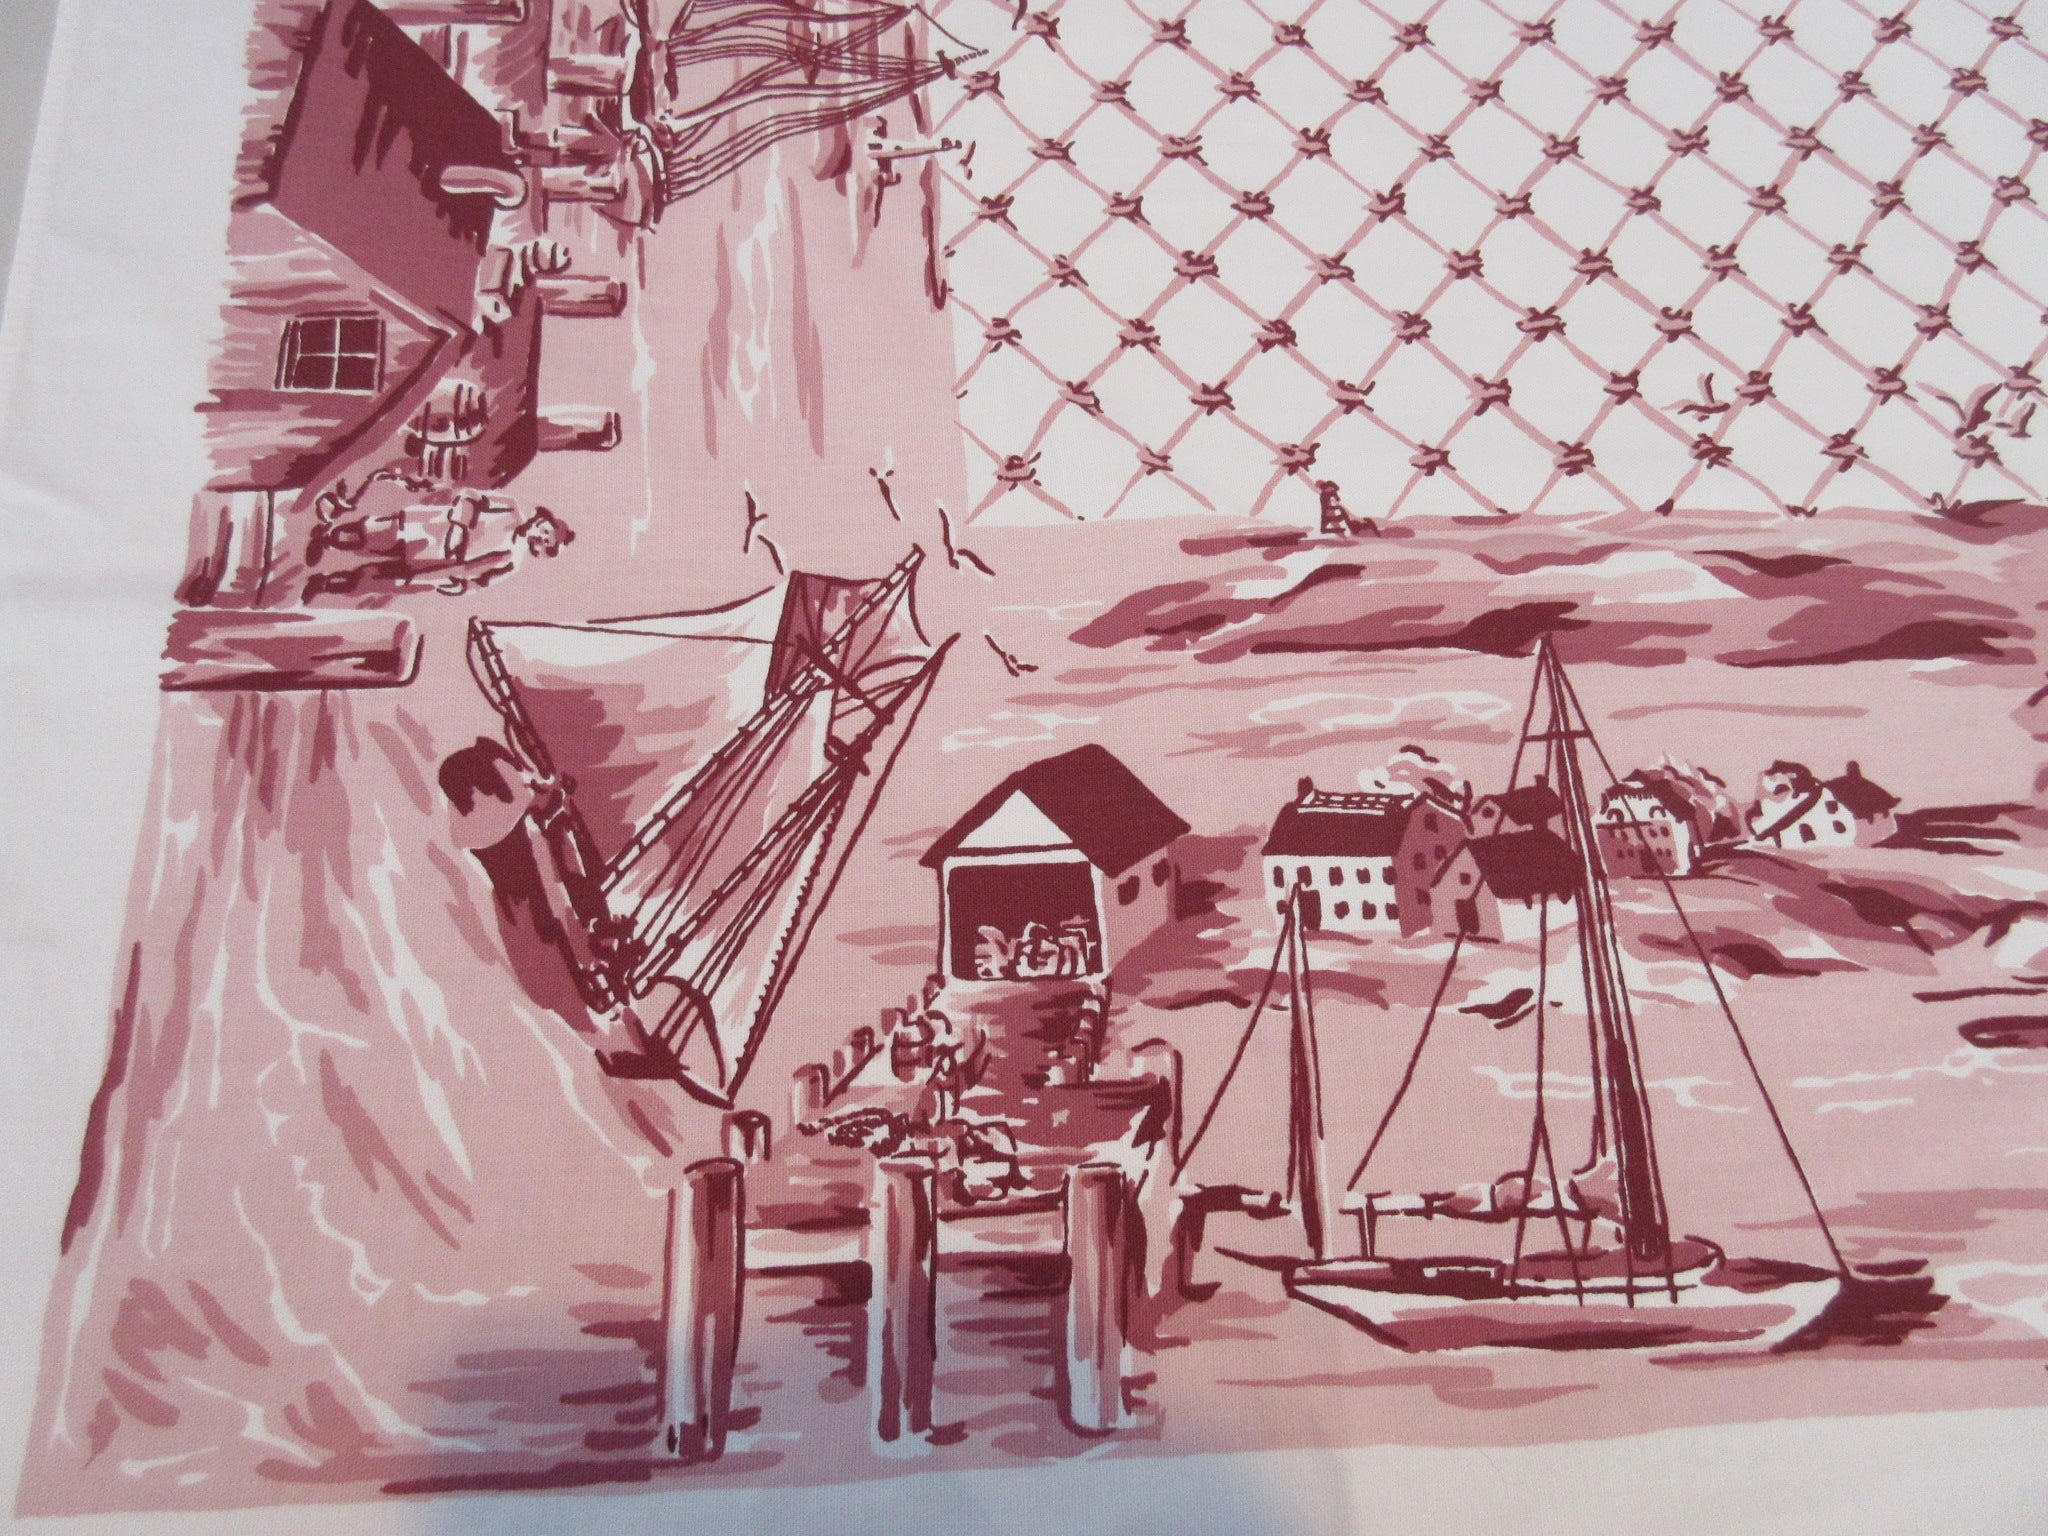 Startex Toile Fishing Village Pink Novelty Vintage Printed Tablecloth (64 X 54)